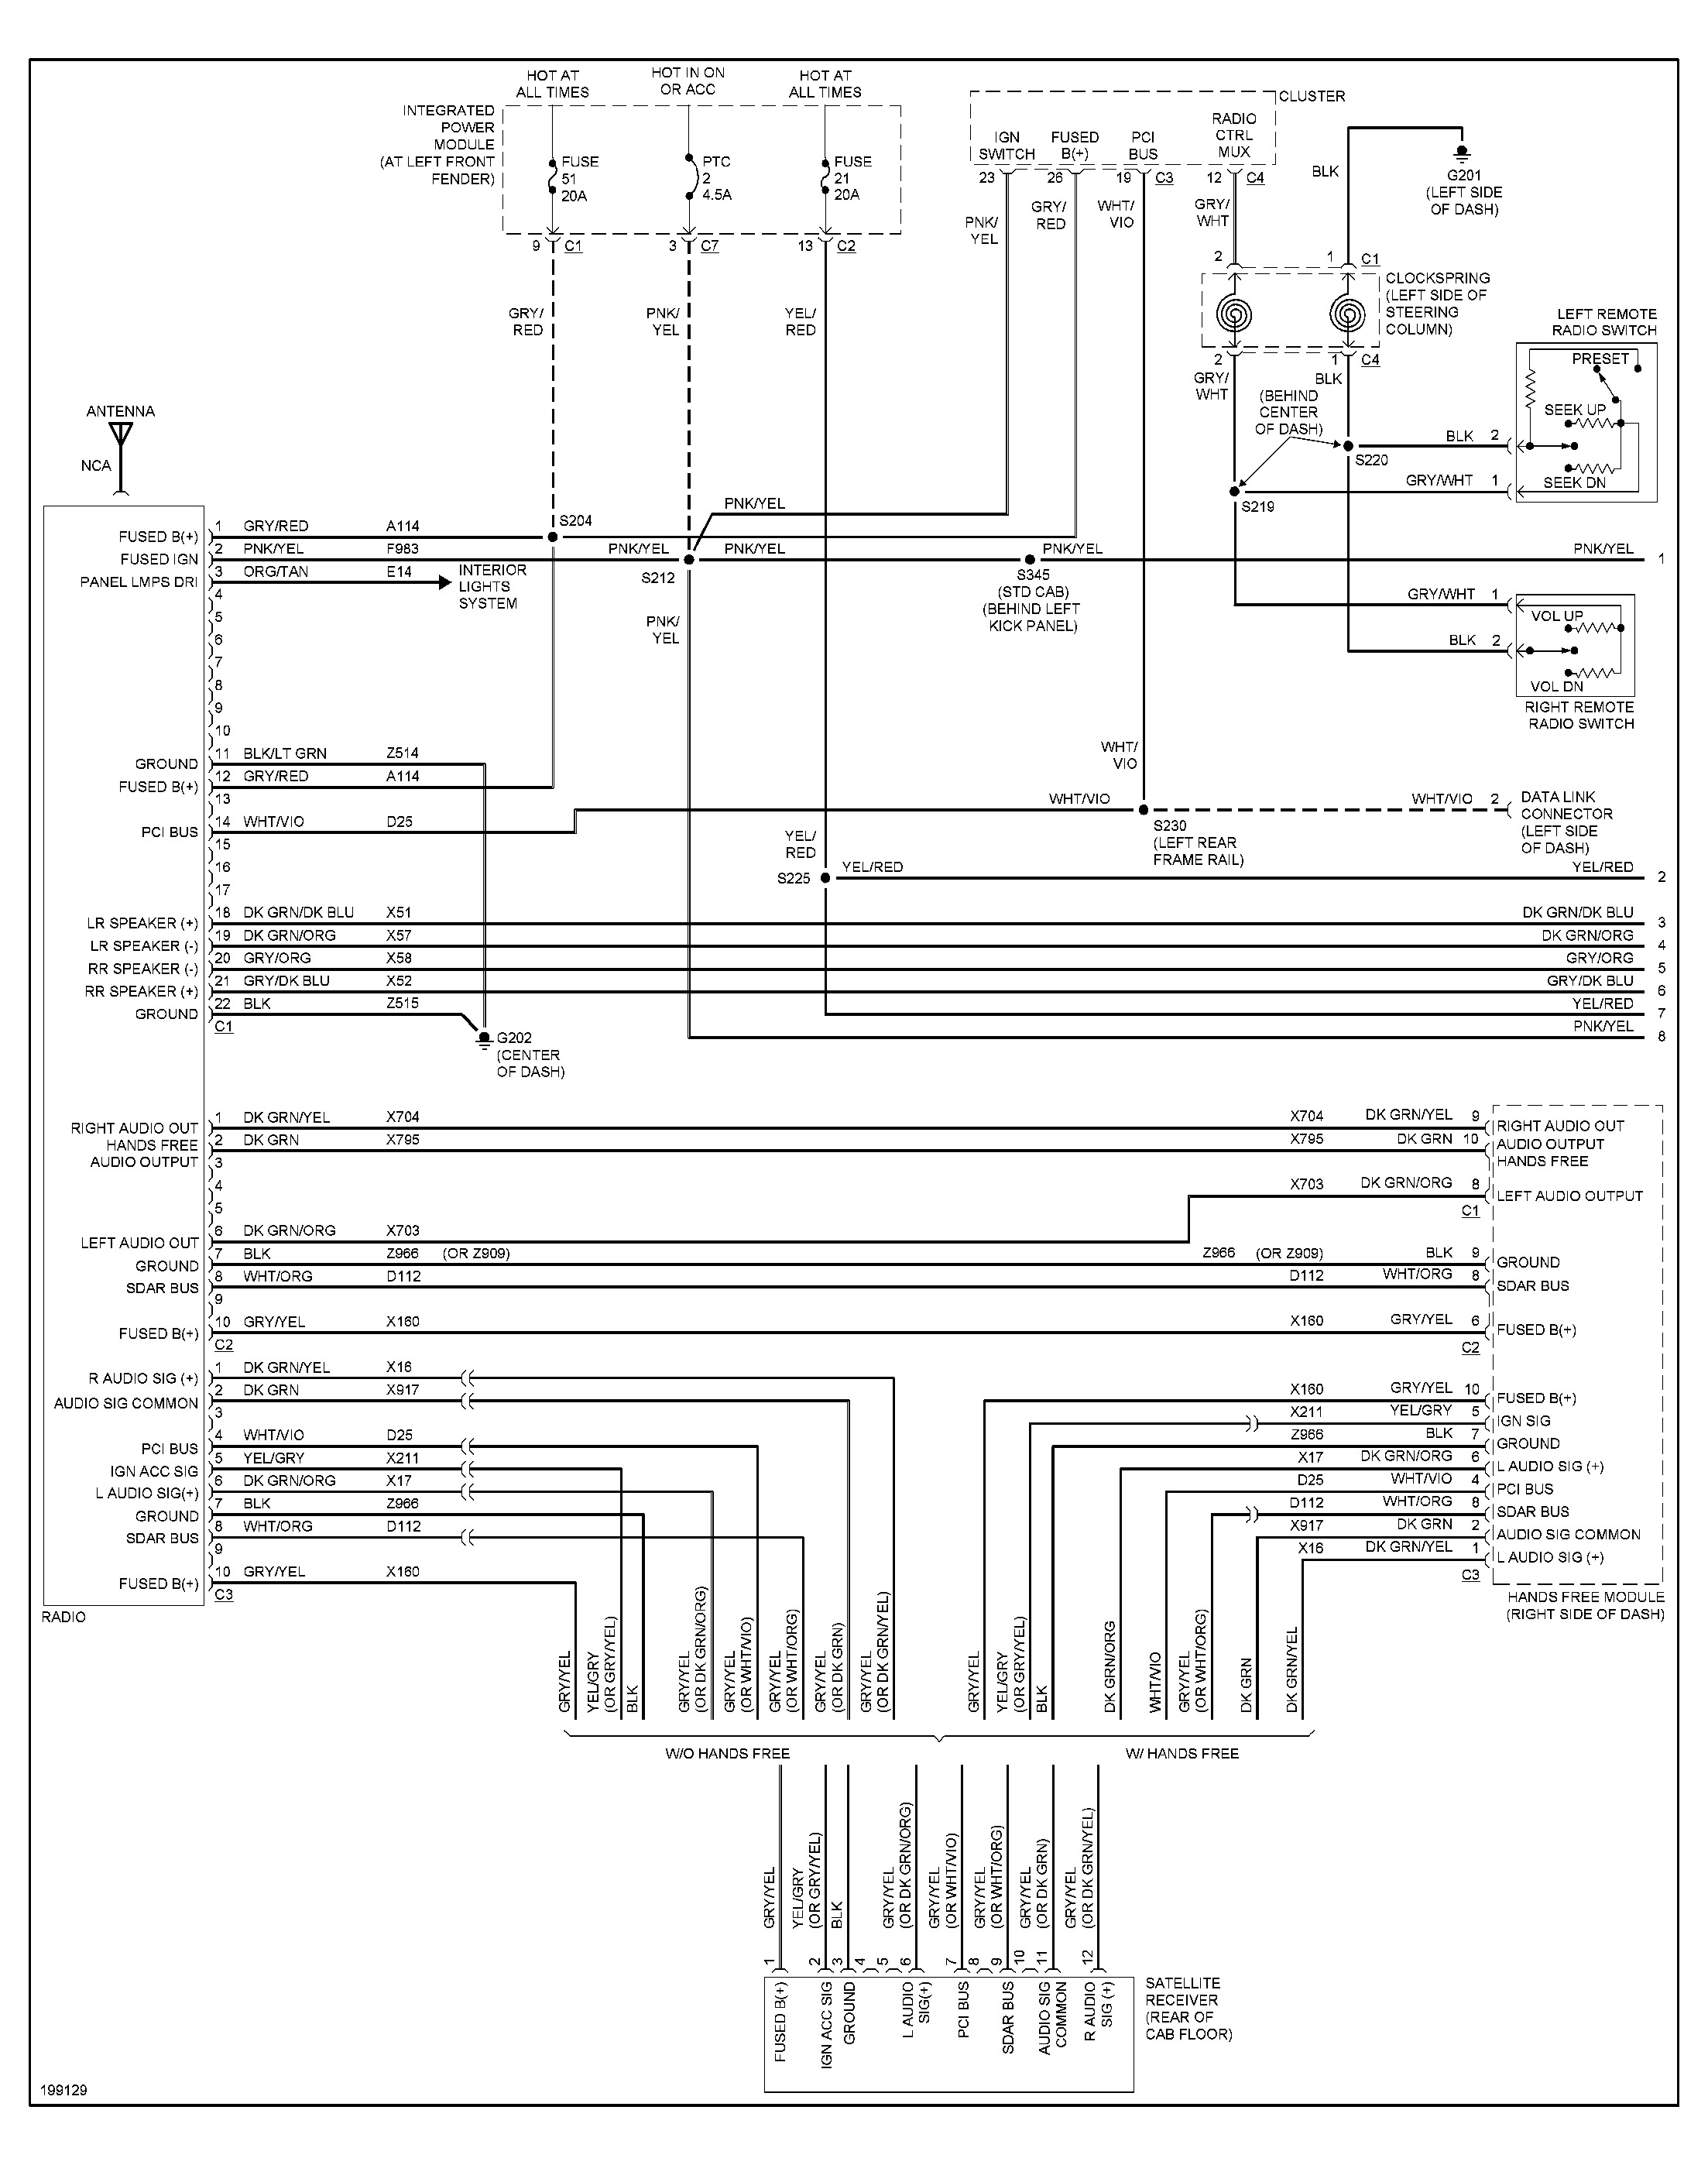 diagram] 2000 dodge ram engine wire diagram full version hd quality wire  diagram - aboutsuspension.aminesorcier.fr  aboutsuspension.aminesorcier.fr